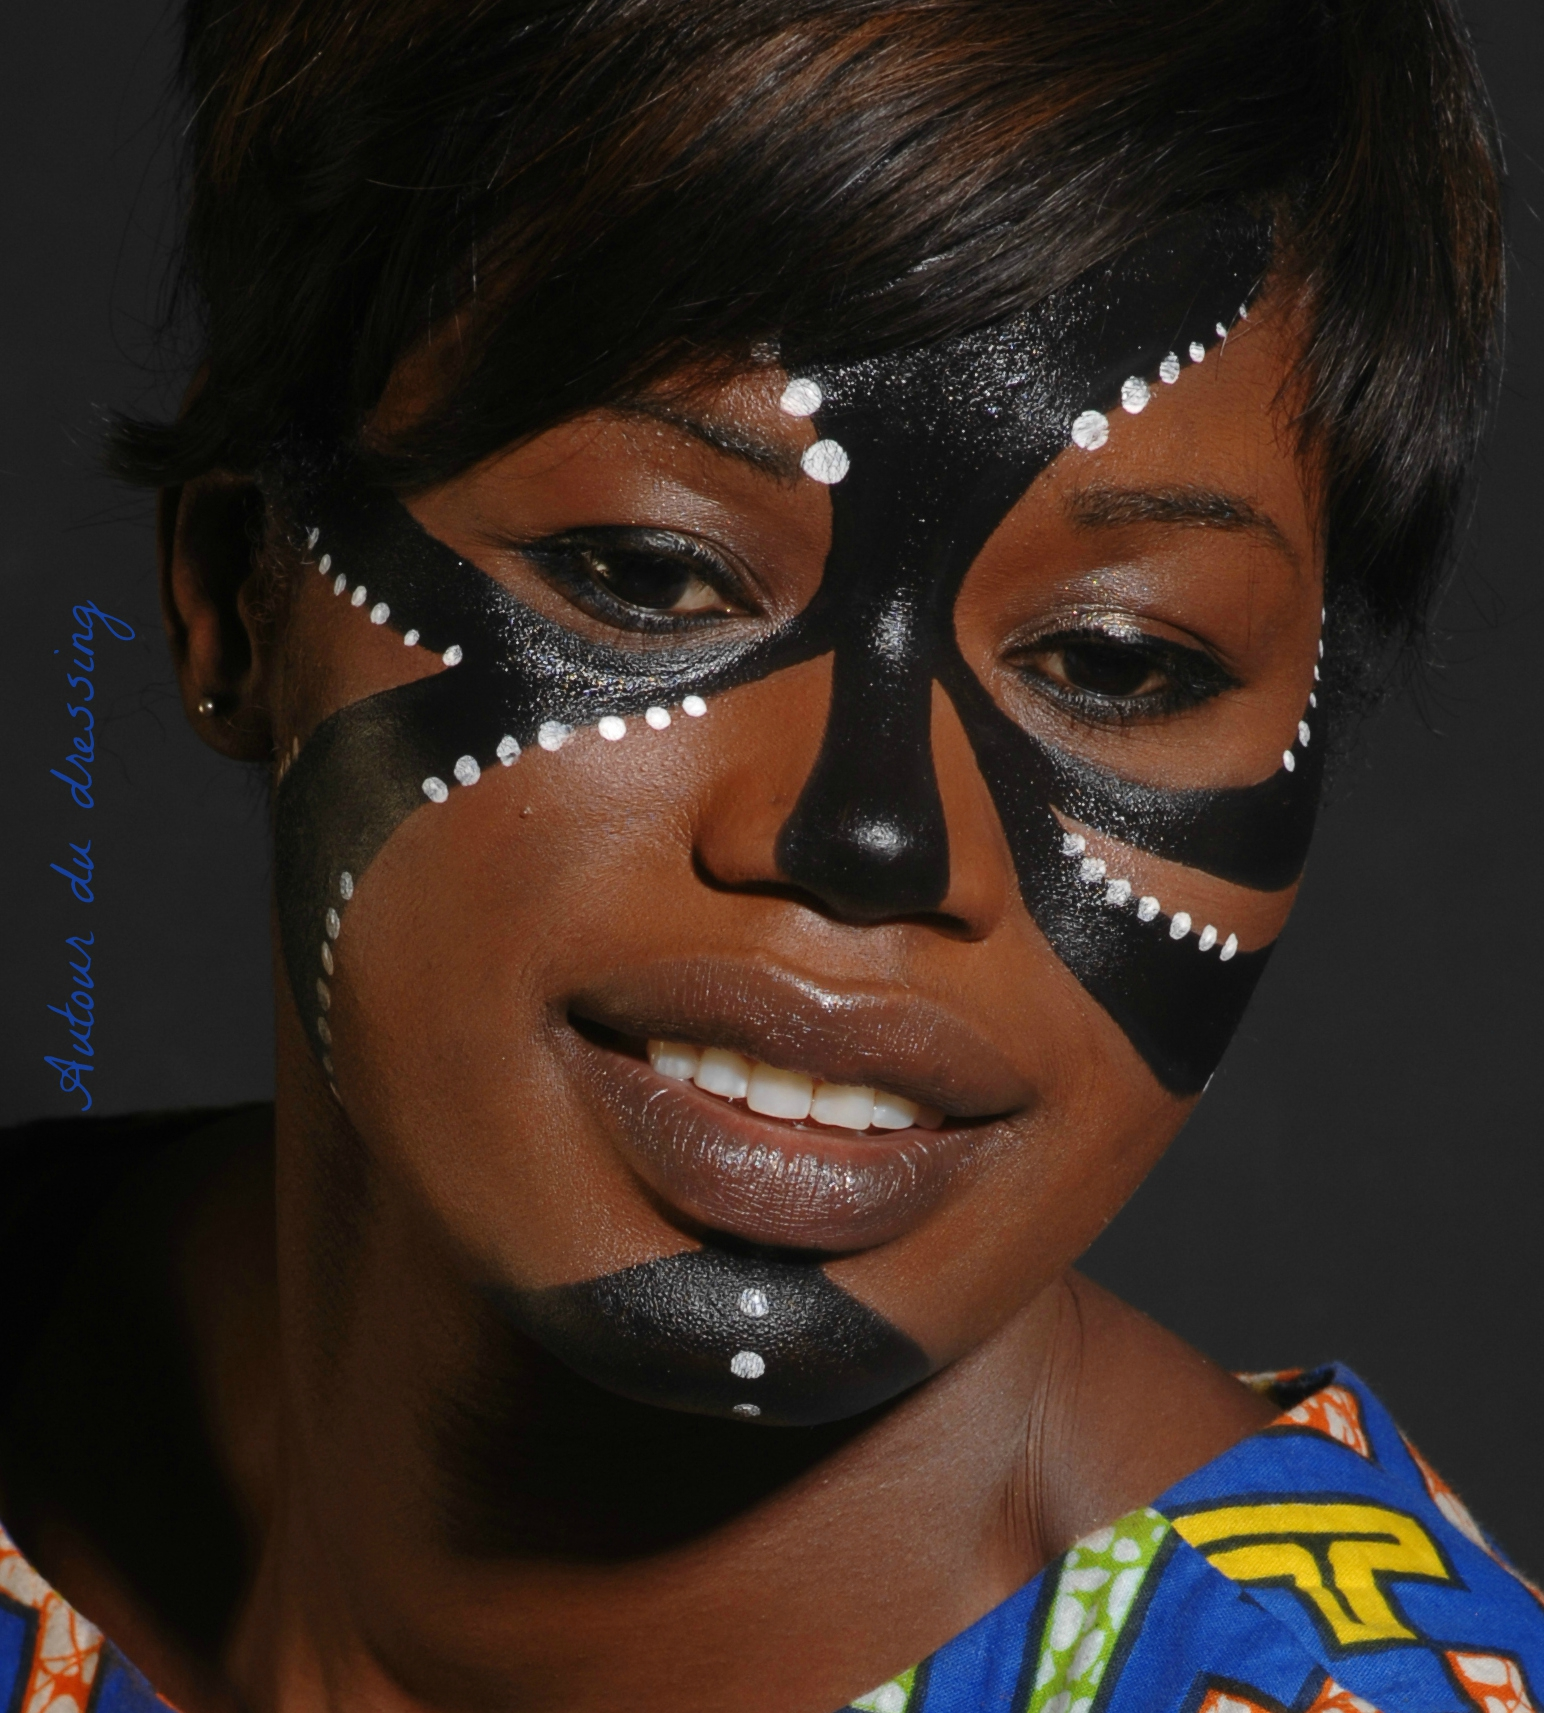 Pin maquillage tribal on pinterest - Maquillage pin up ...